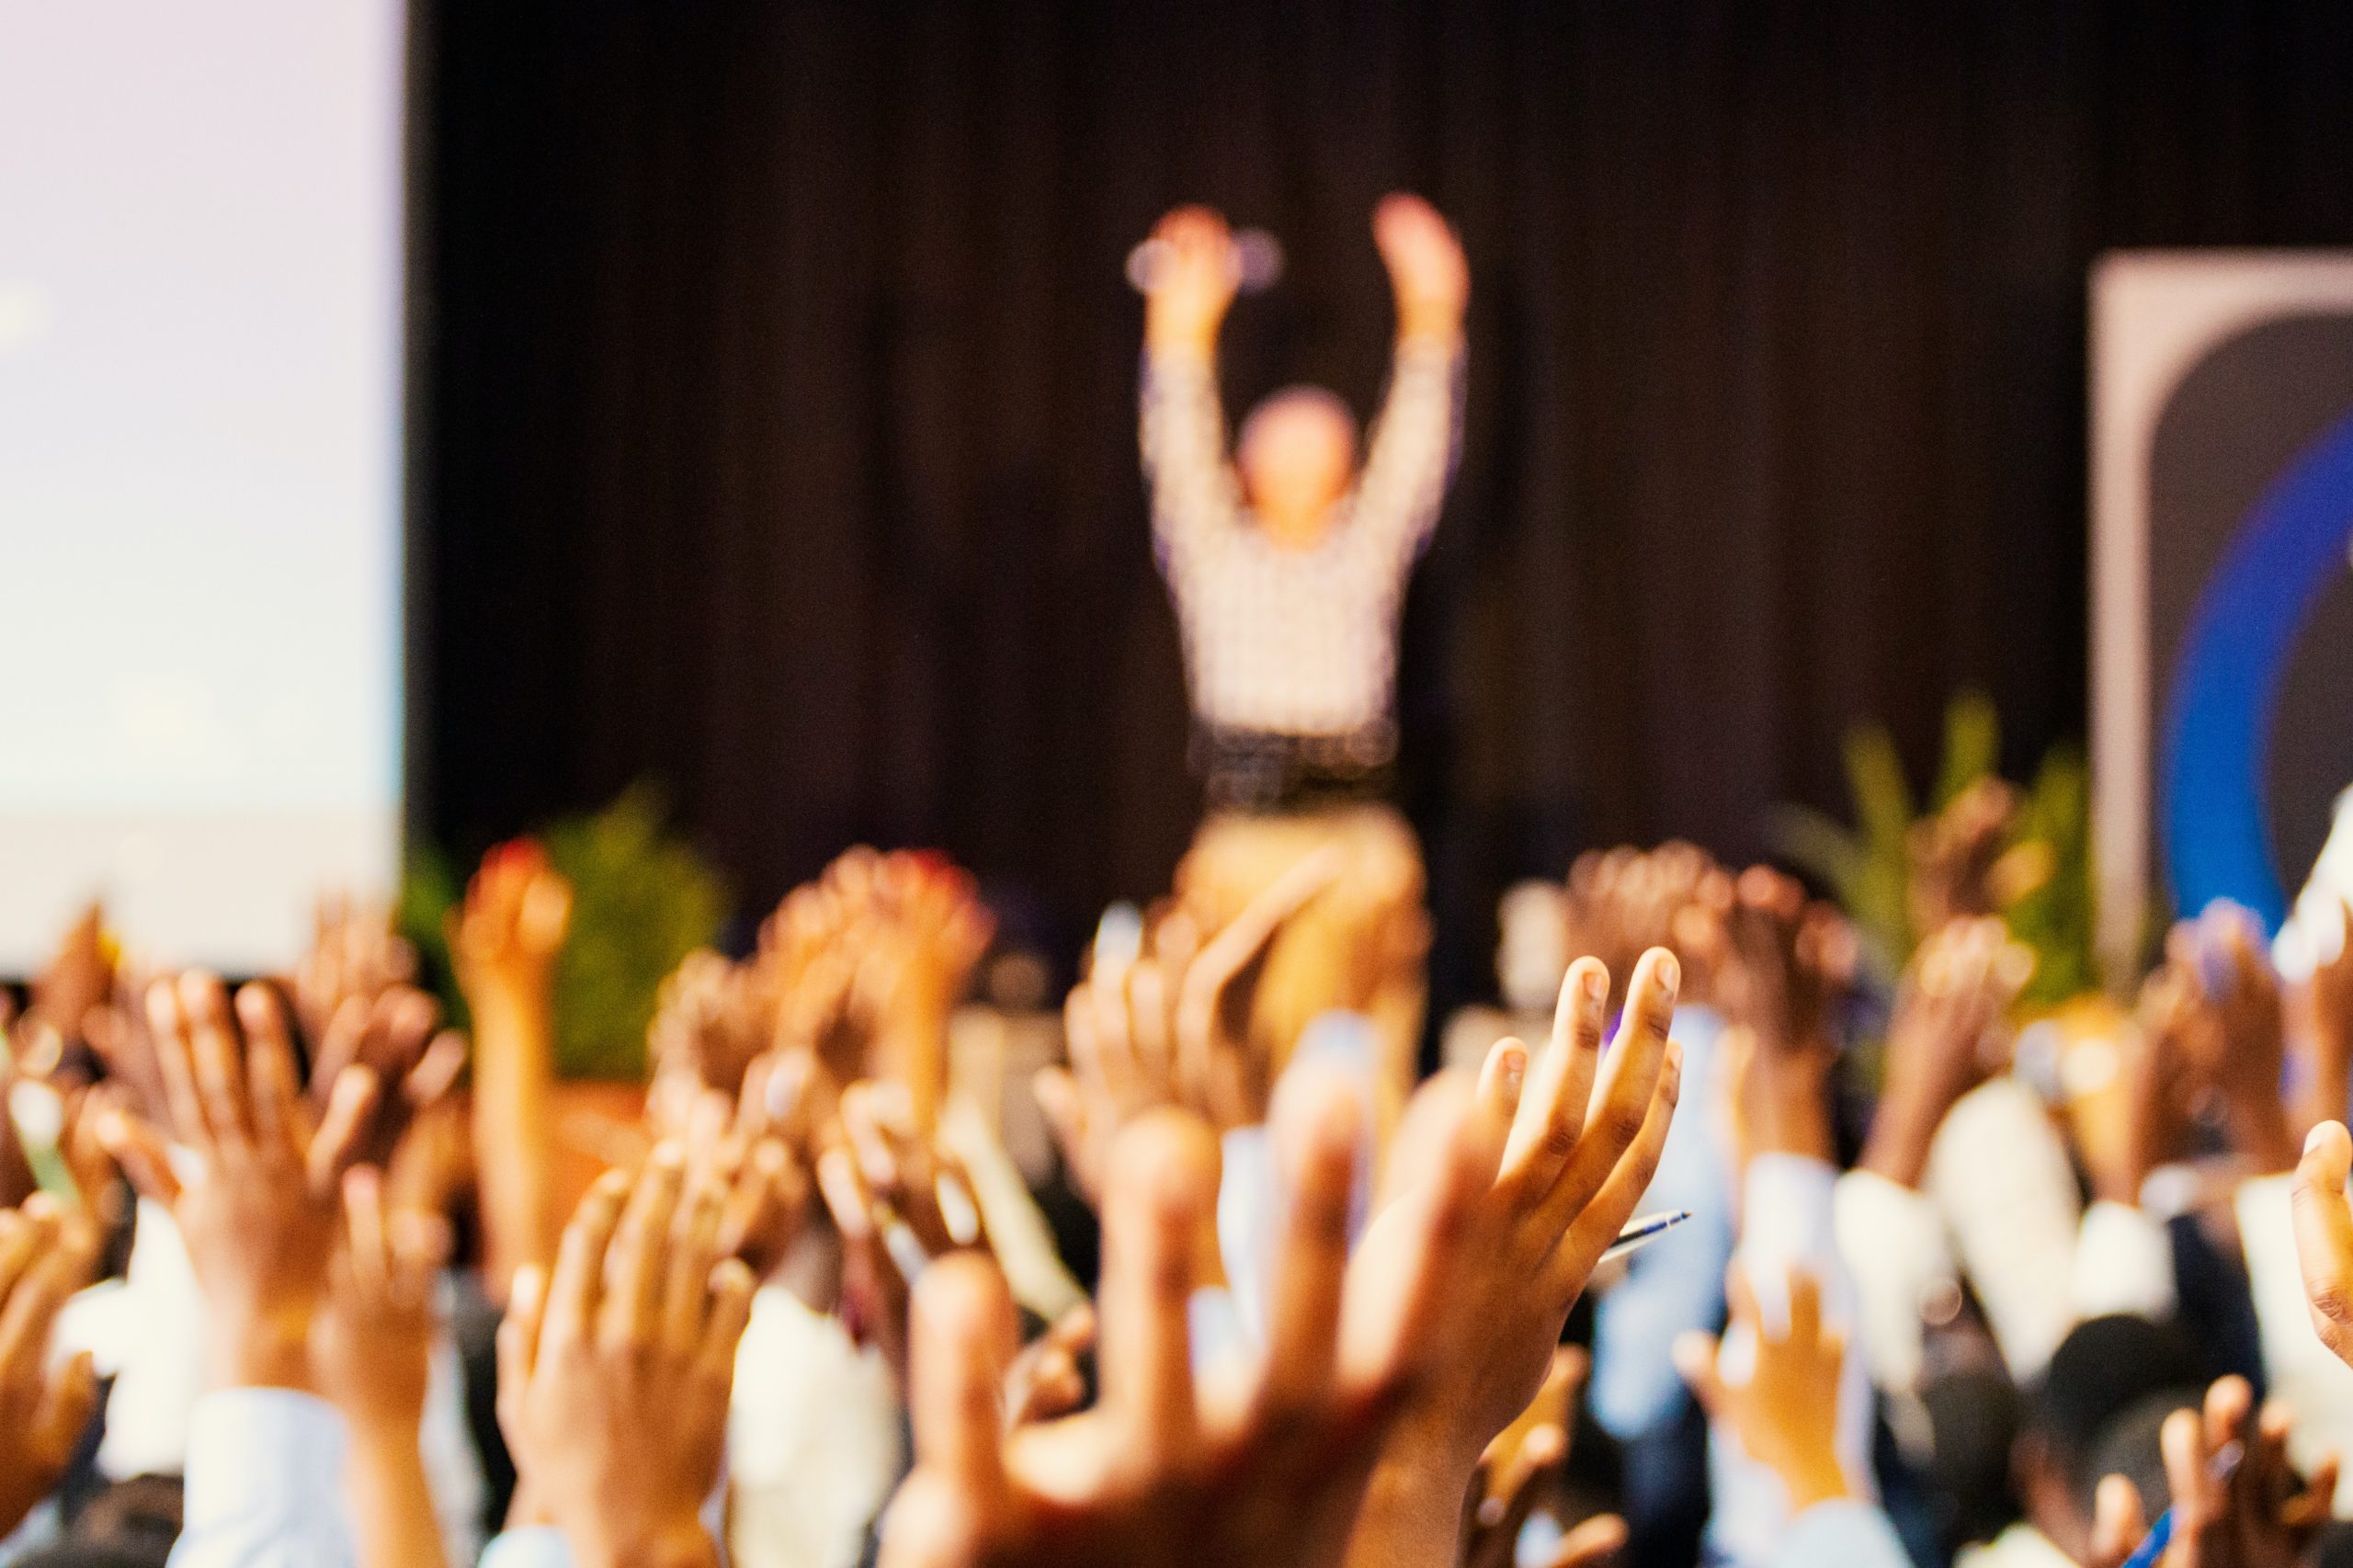 Crowd of people with hands in the air